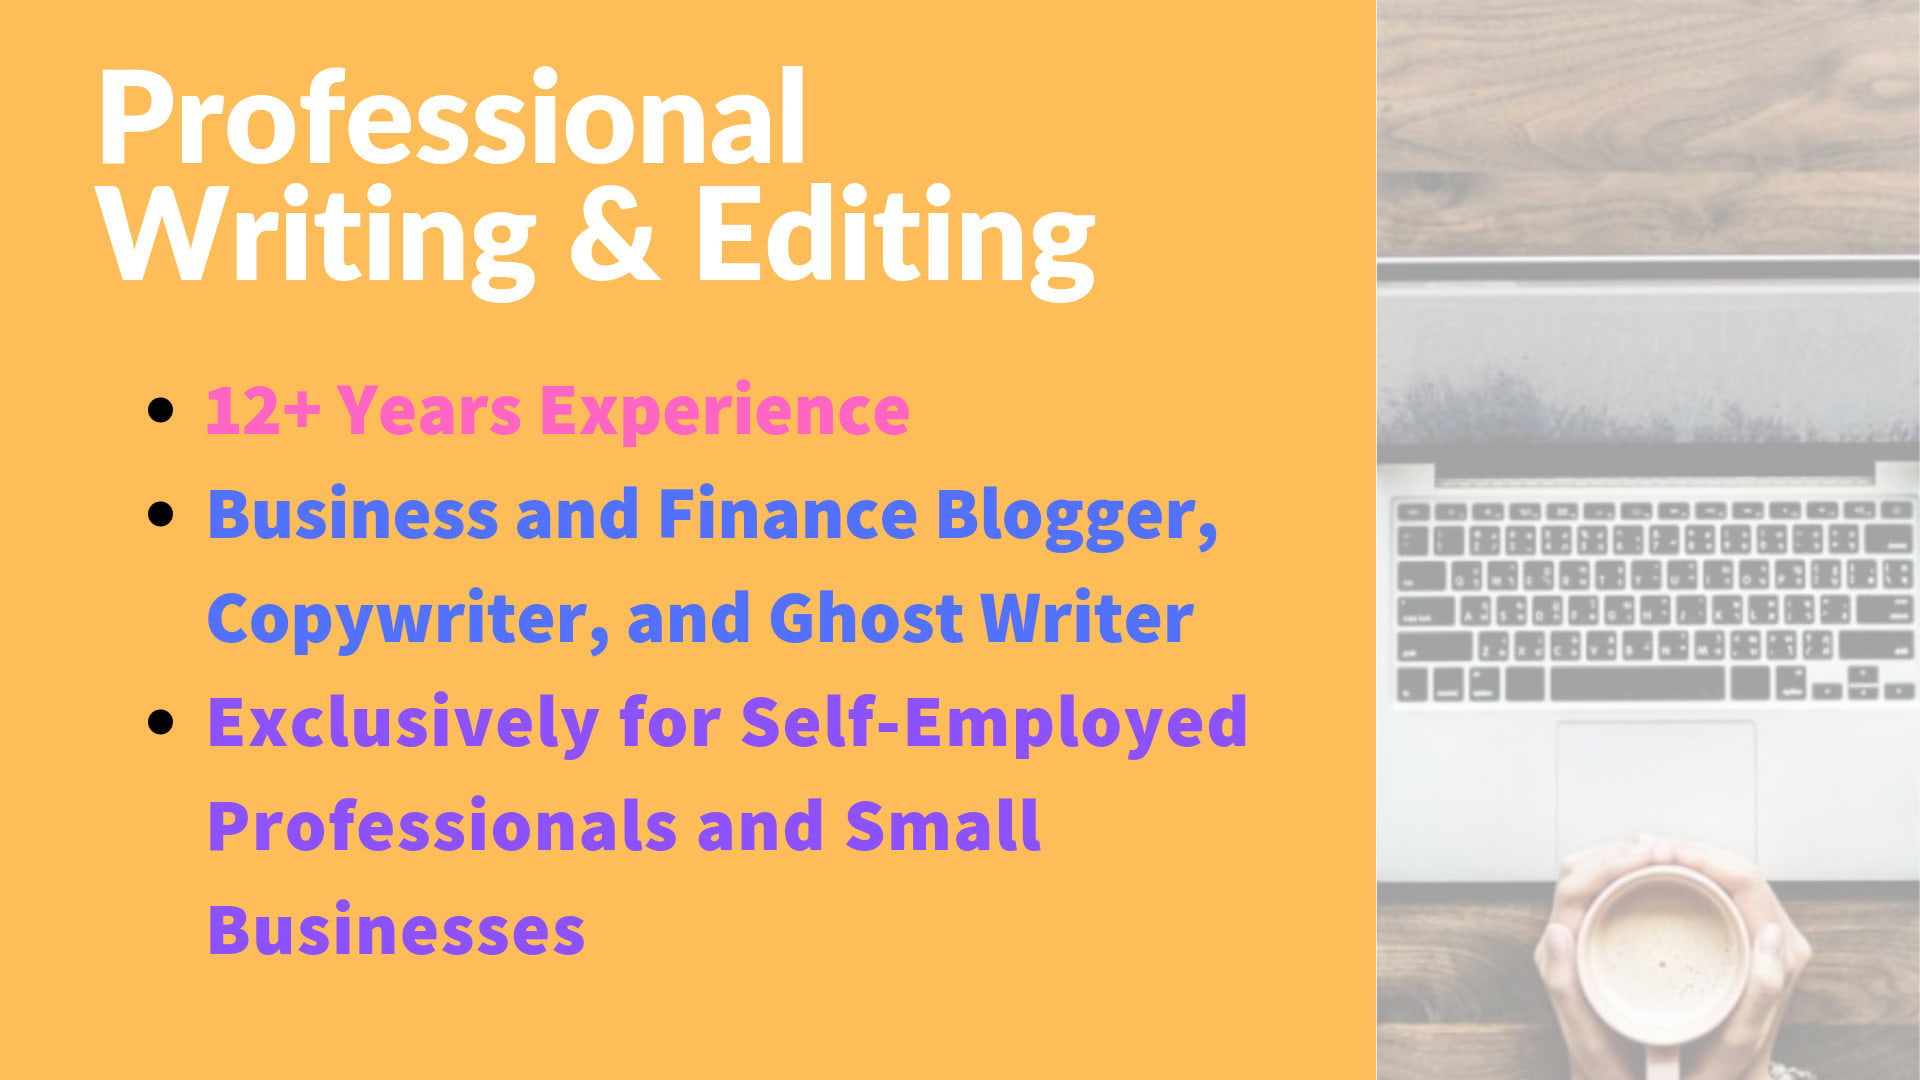 I will write a professional article or blog post